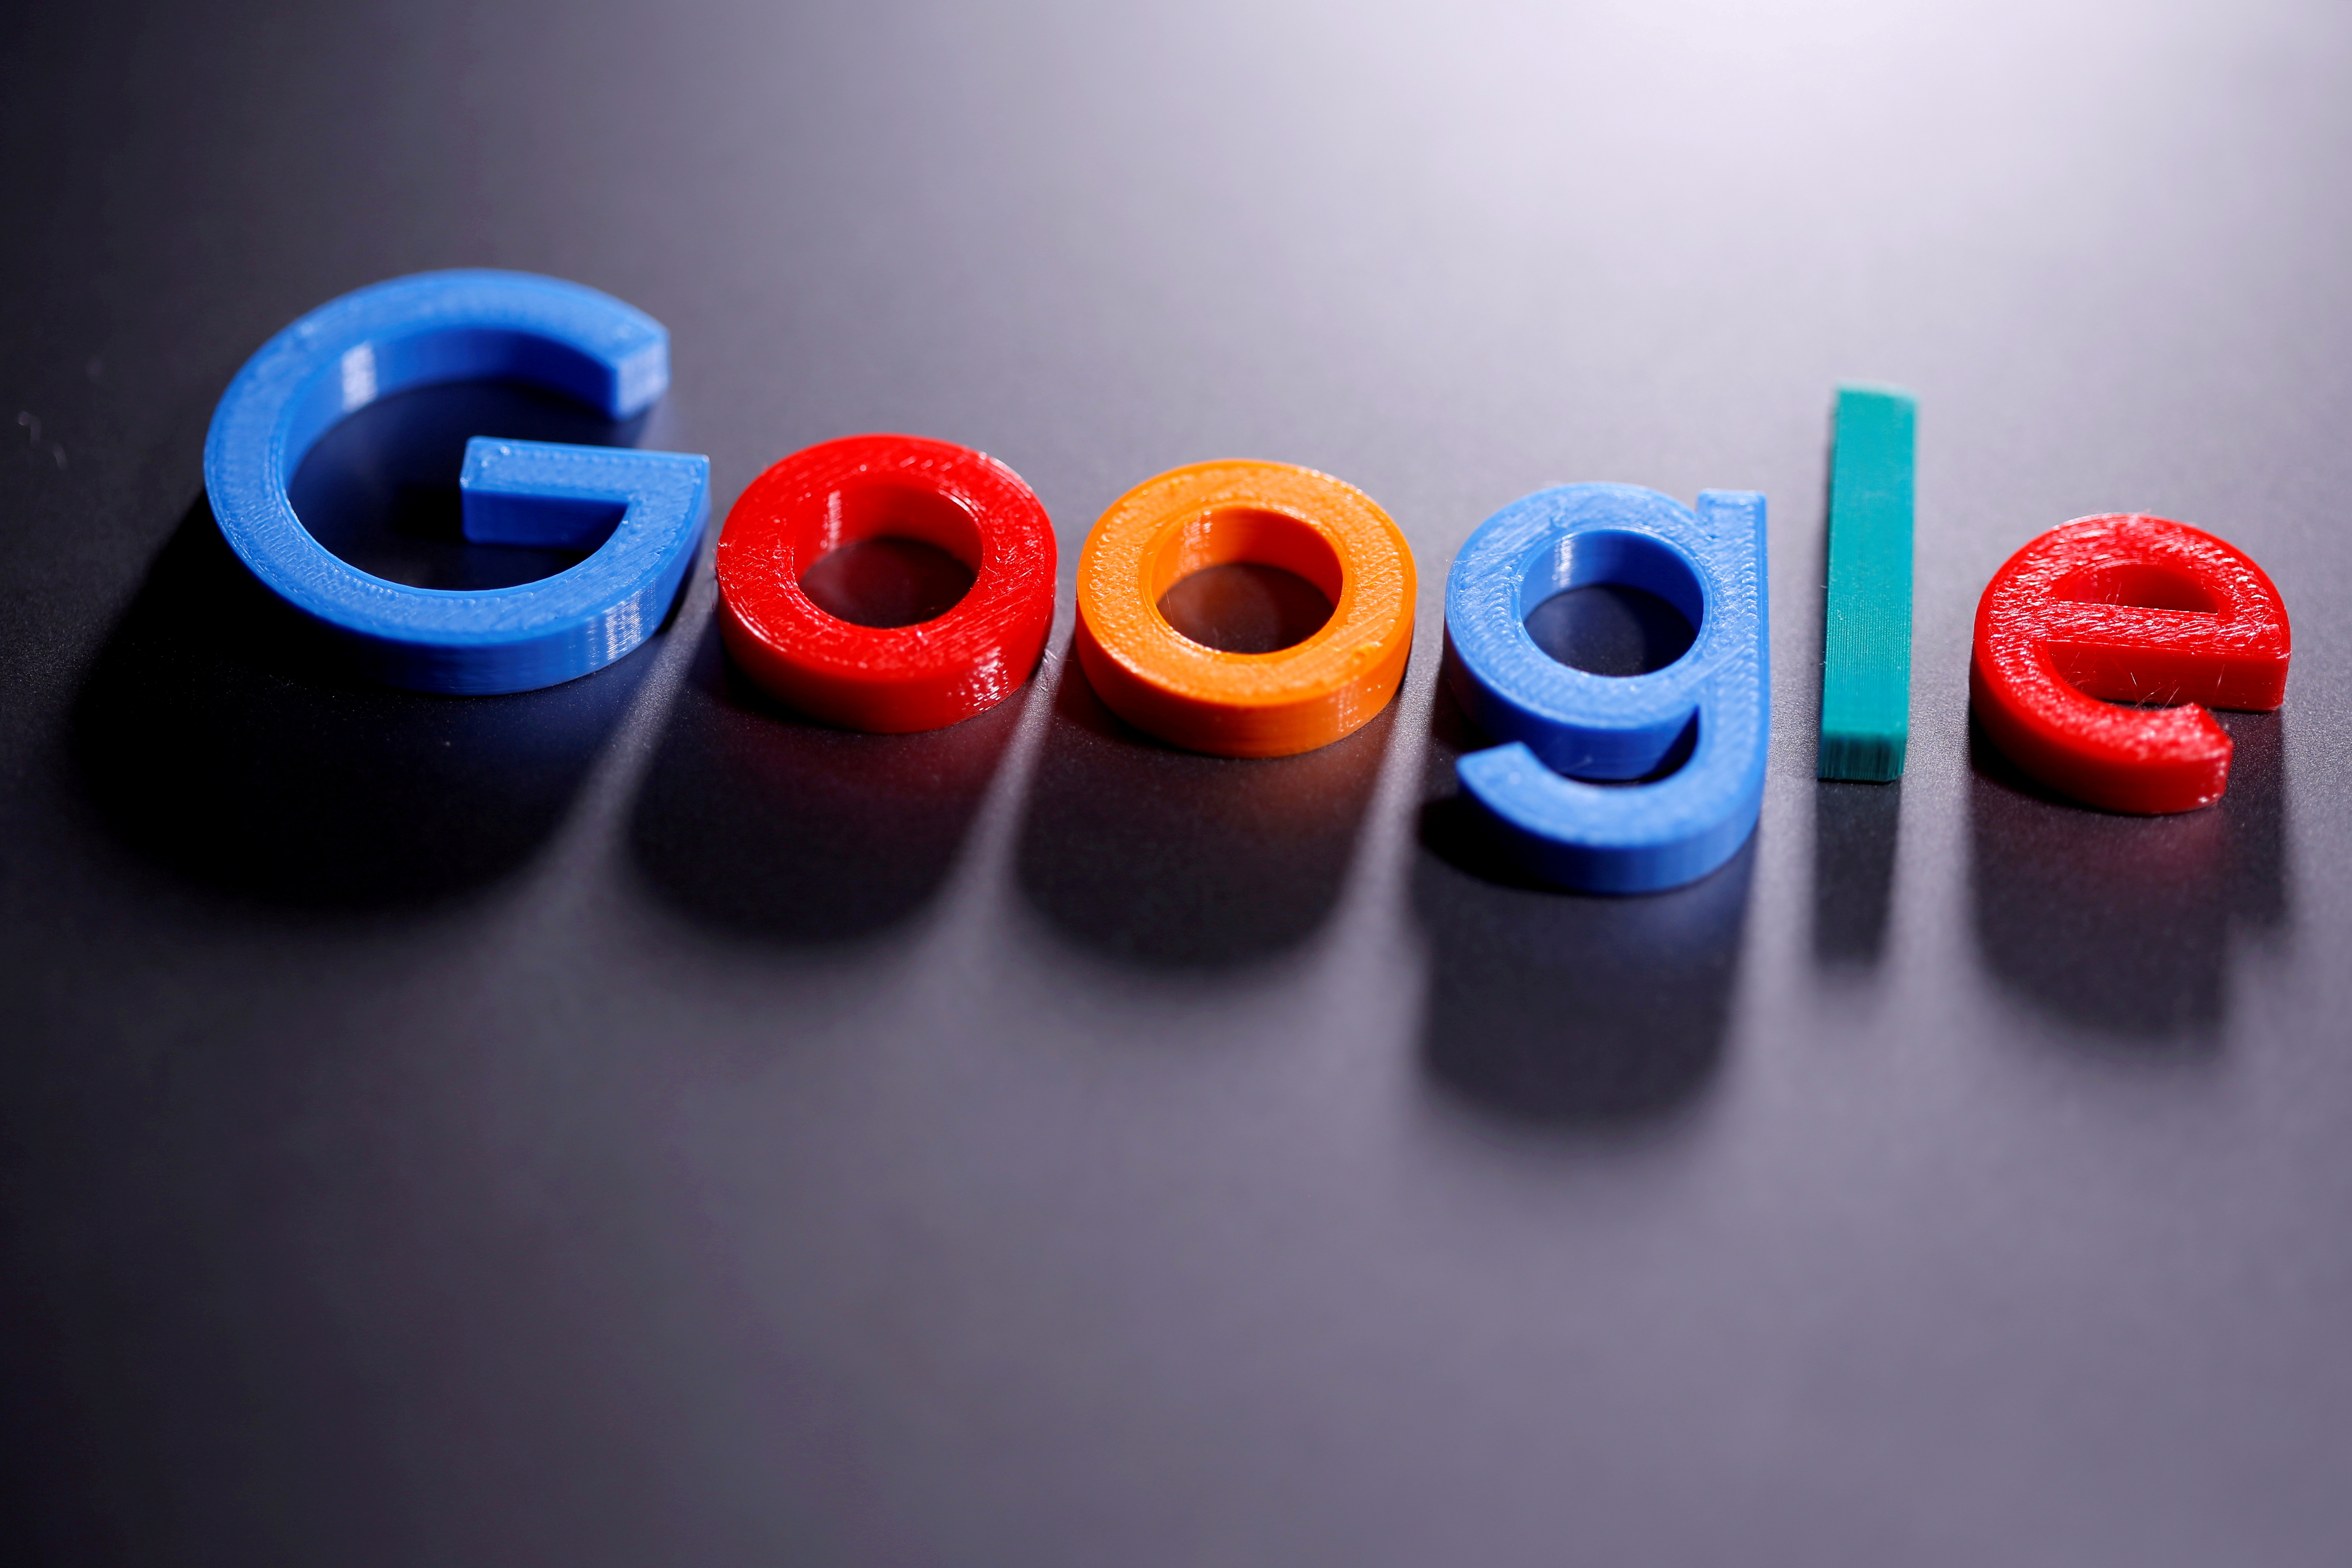 A 3D-printed Google logo is seen in this illustration taken April 12, 2020. REUTERS/Dado Ruvic/Illustration/File Photo